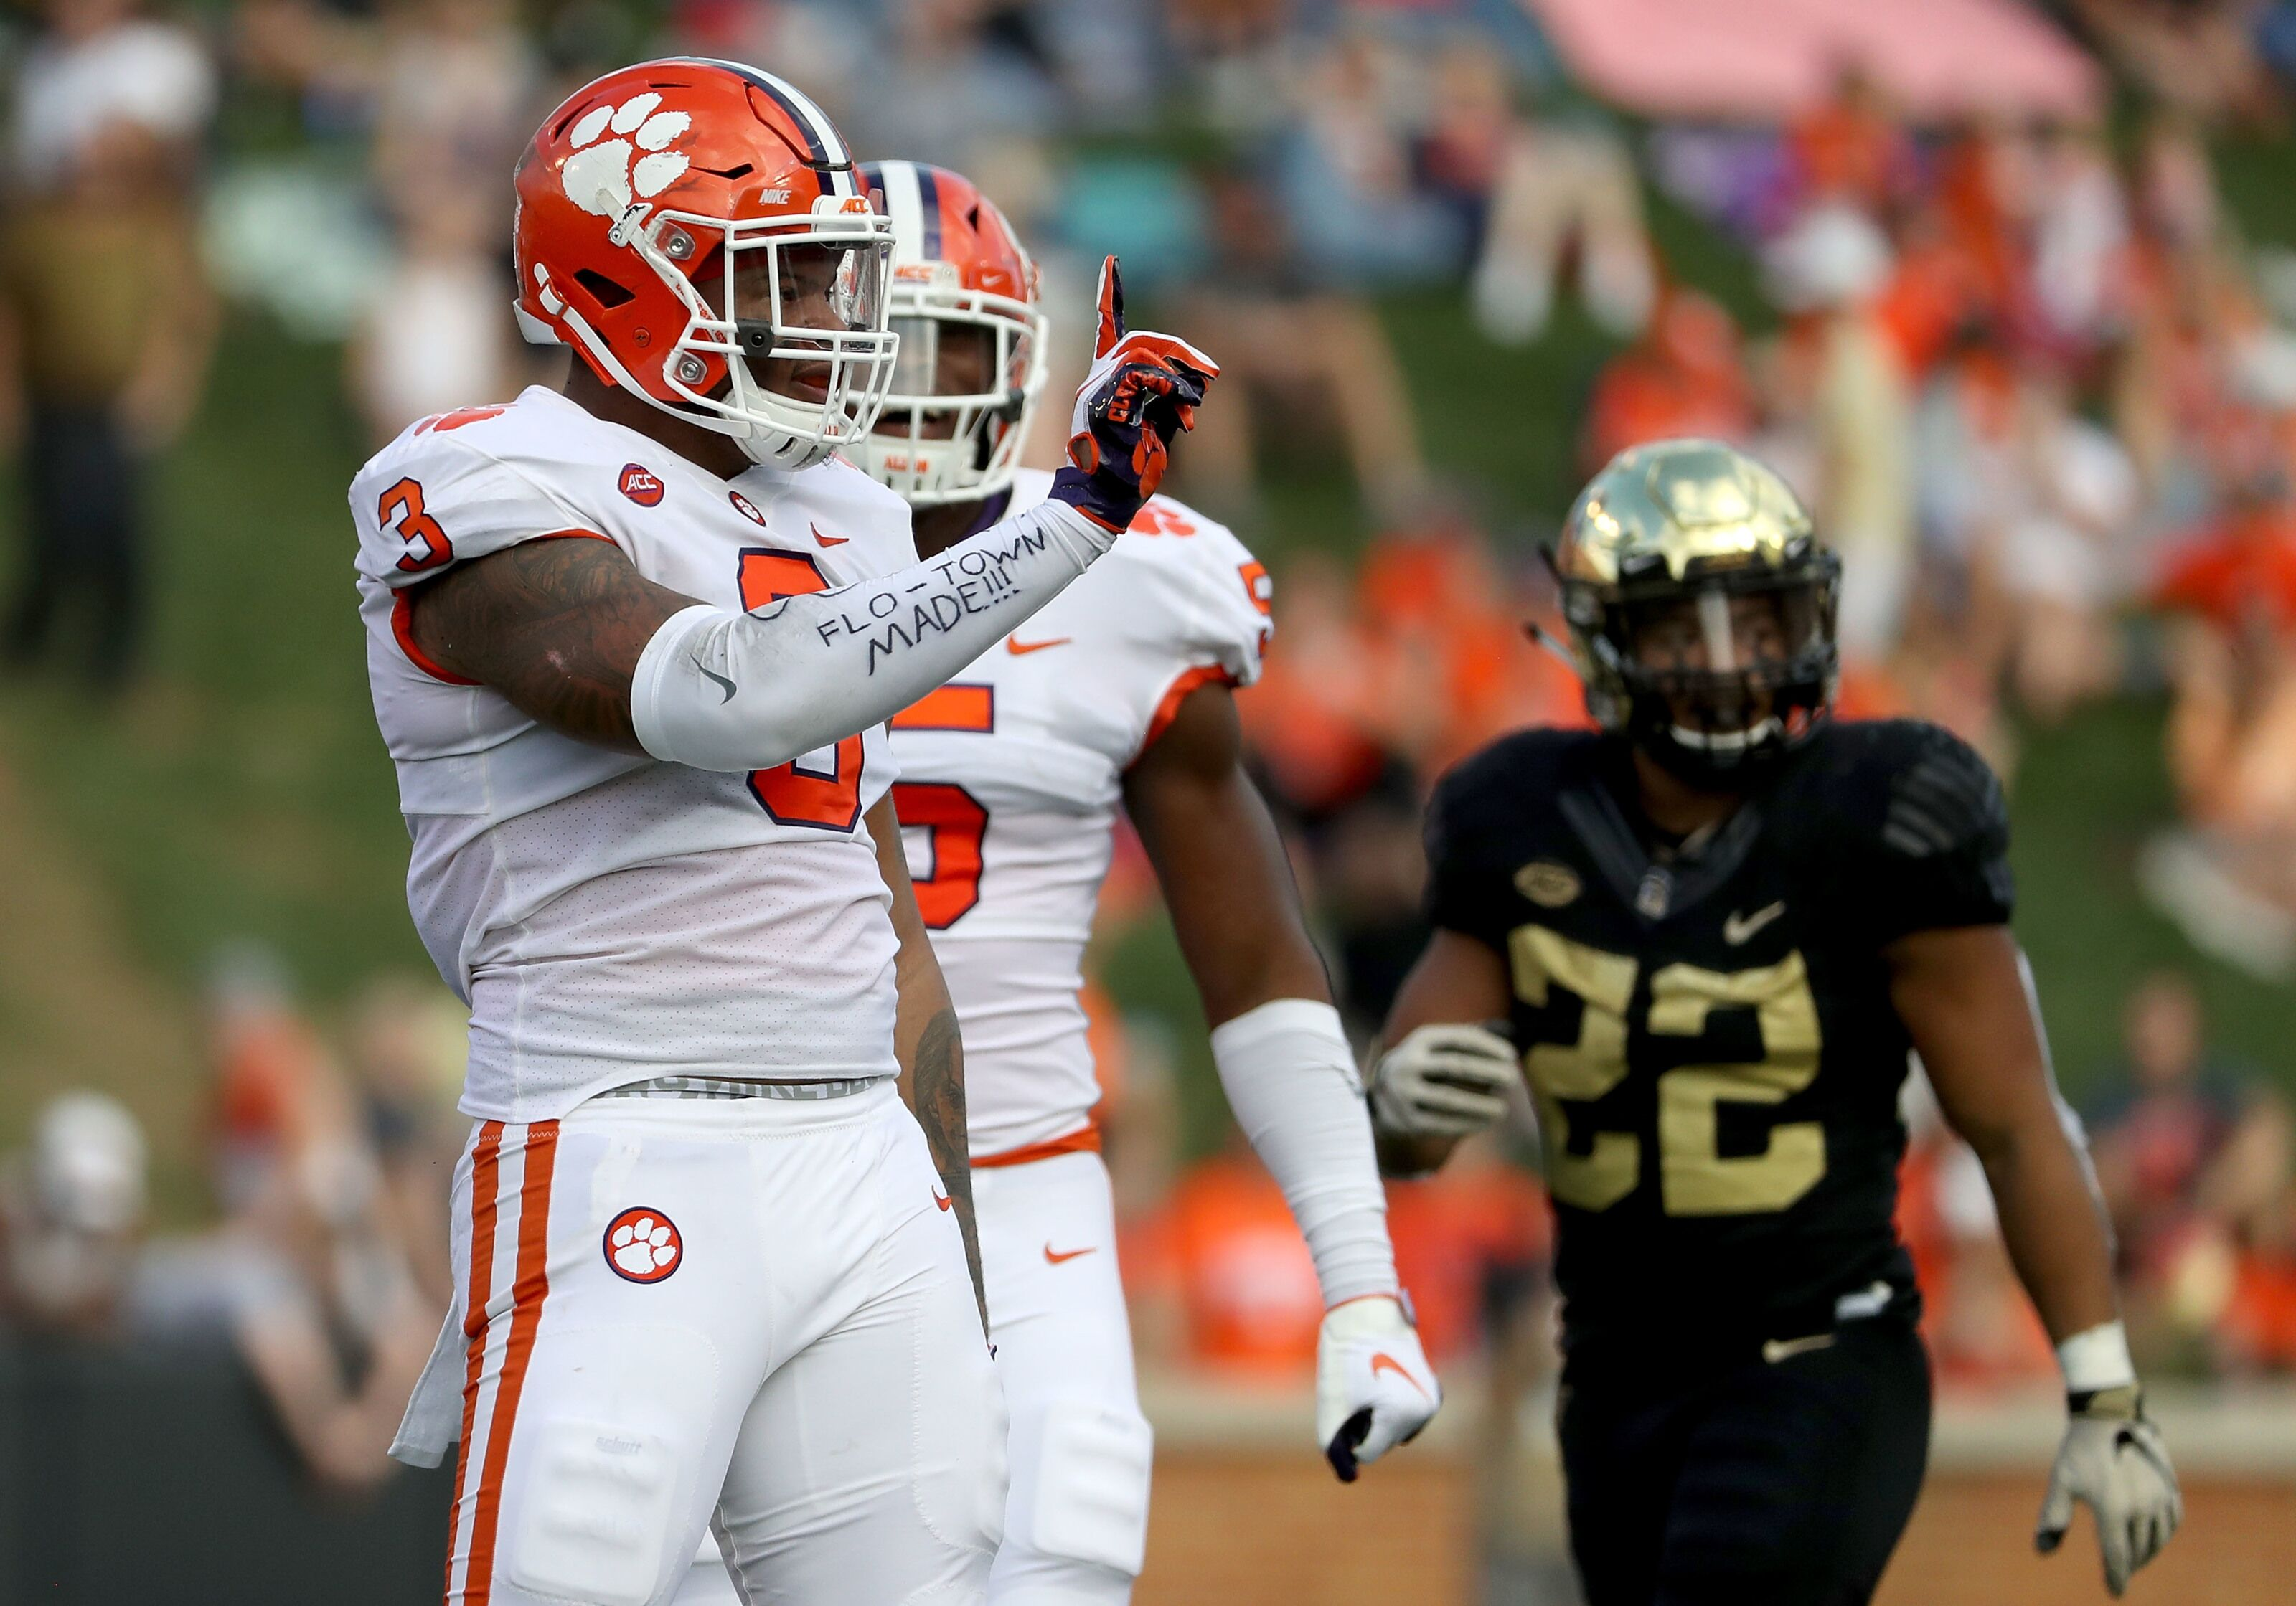 Clemson Football: Where do the Tigers fit in the national landscape?